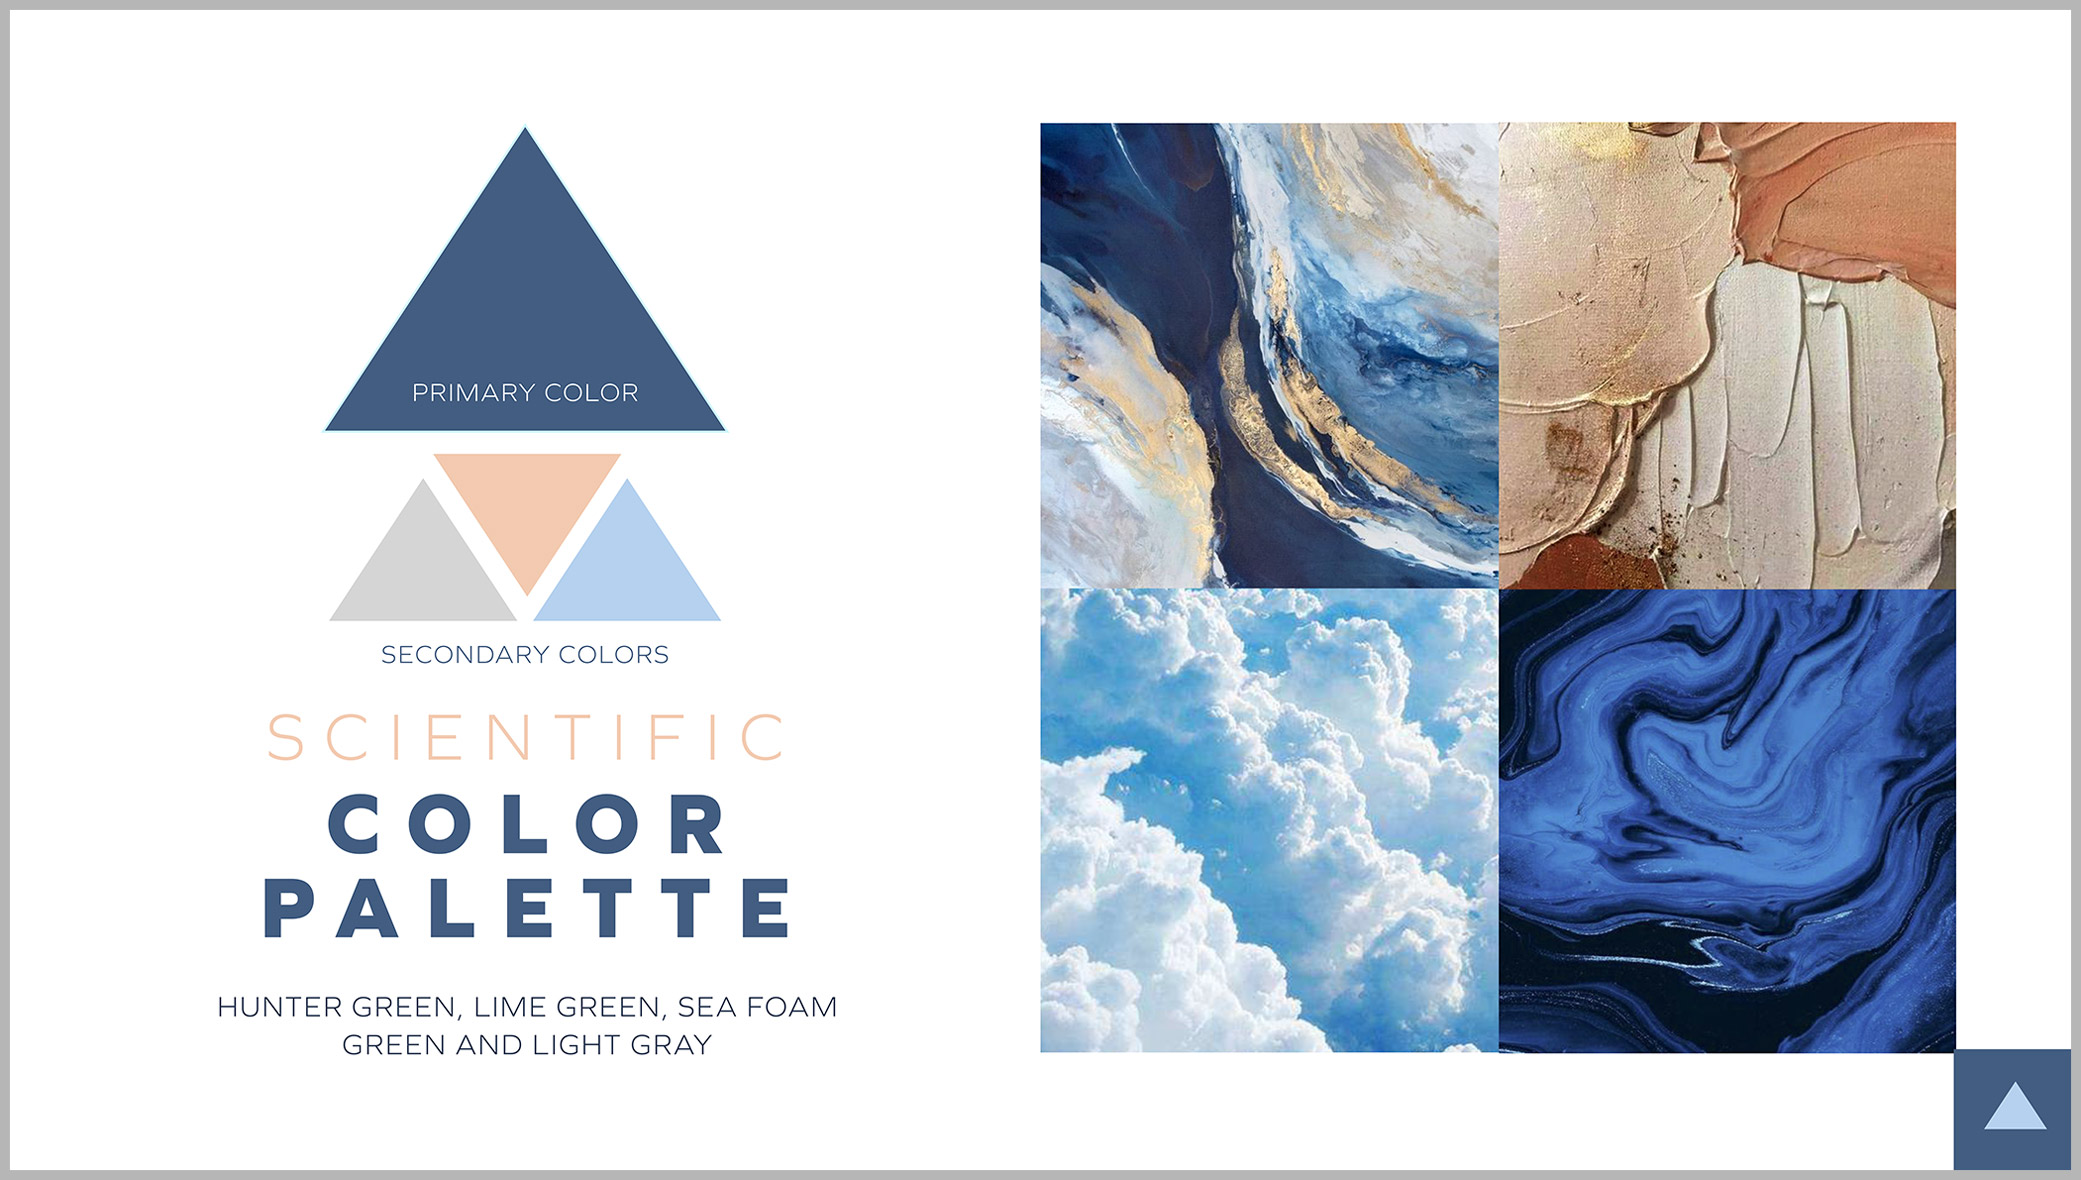 OptiCann cannabis design color palette showcasing primary and secondary color options and inspiration photos.